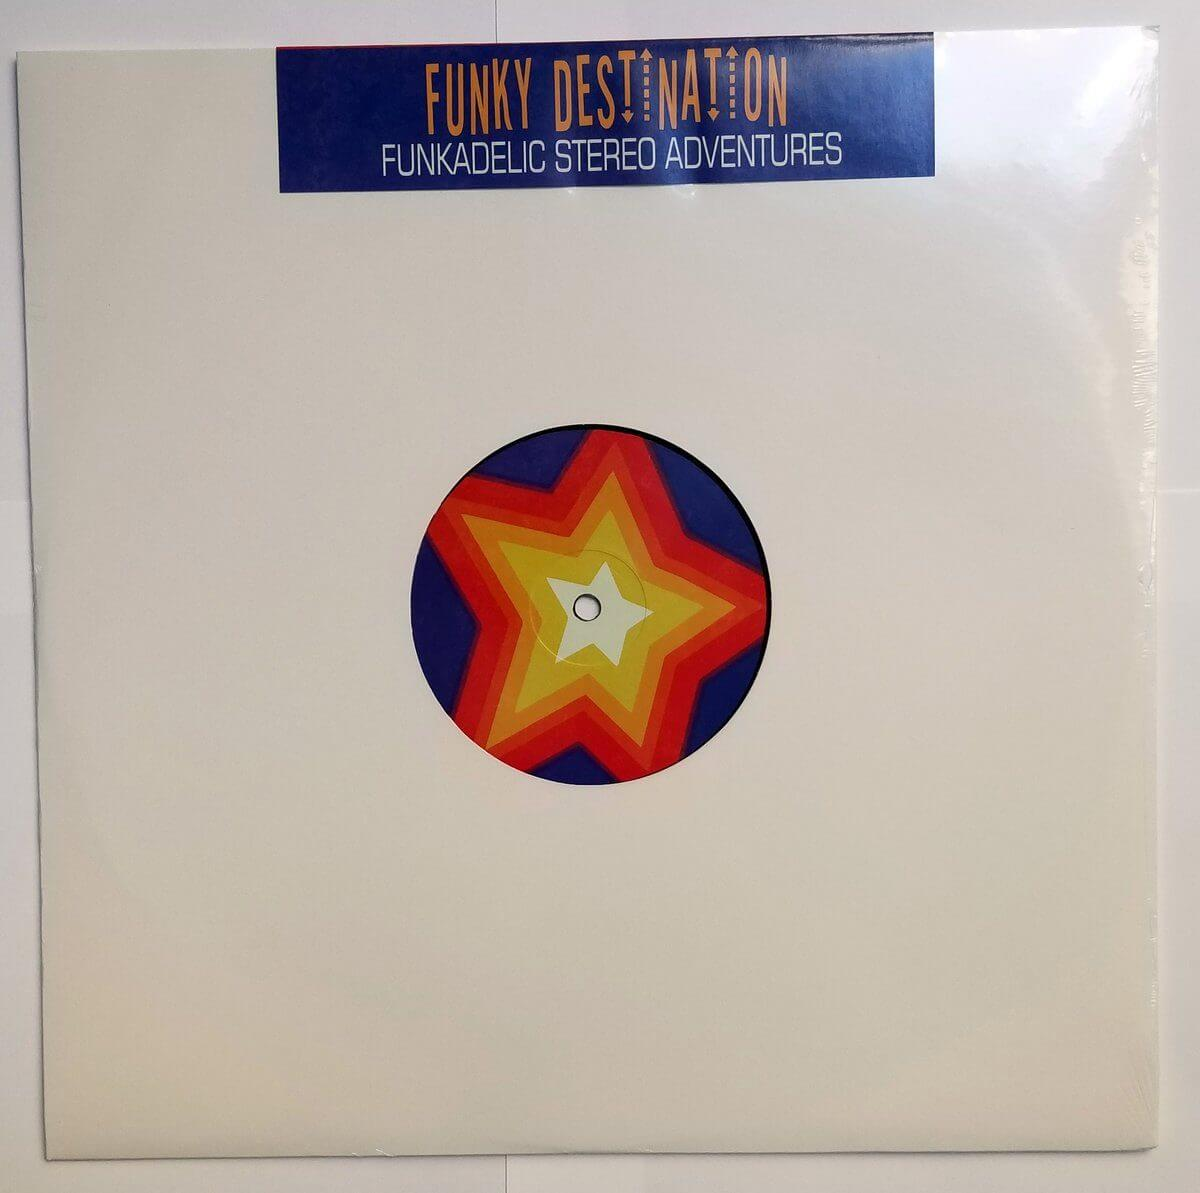 "Funky Destination - Funkadelic Stereo Adventures - Limited Edition 12"" Vinyl Cold Busted"